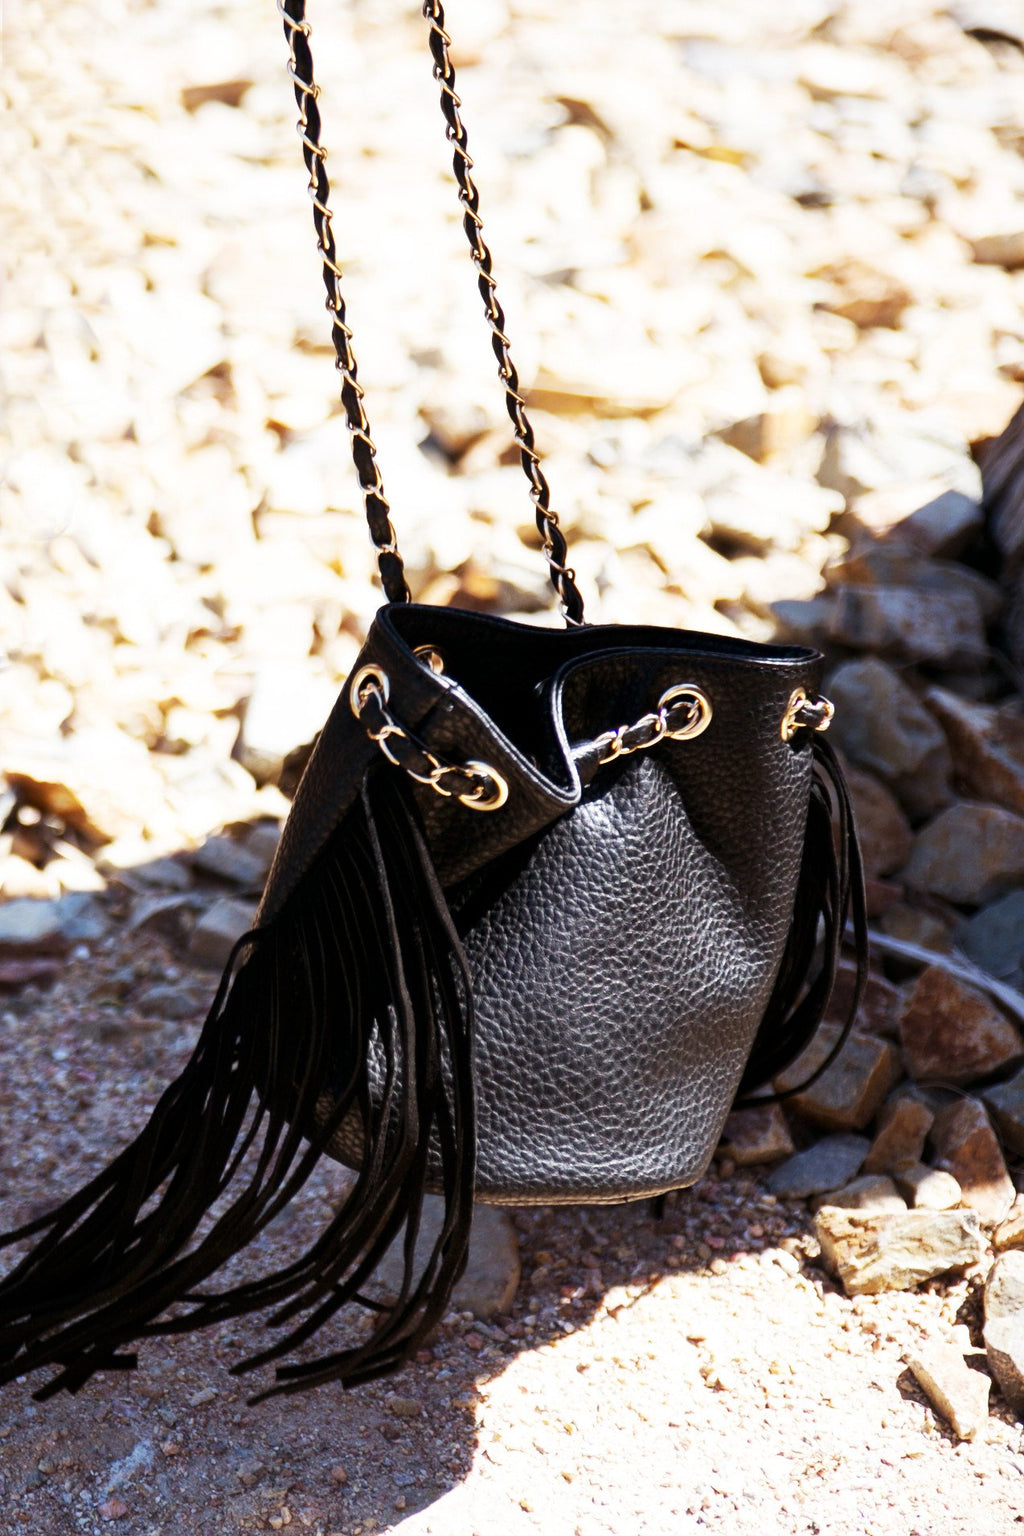 FREE RIDE SATCHEL BAG - Black - Haute & Rebellious